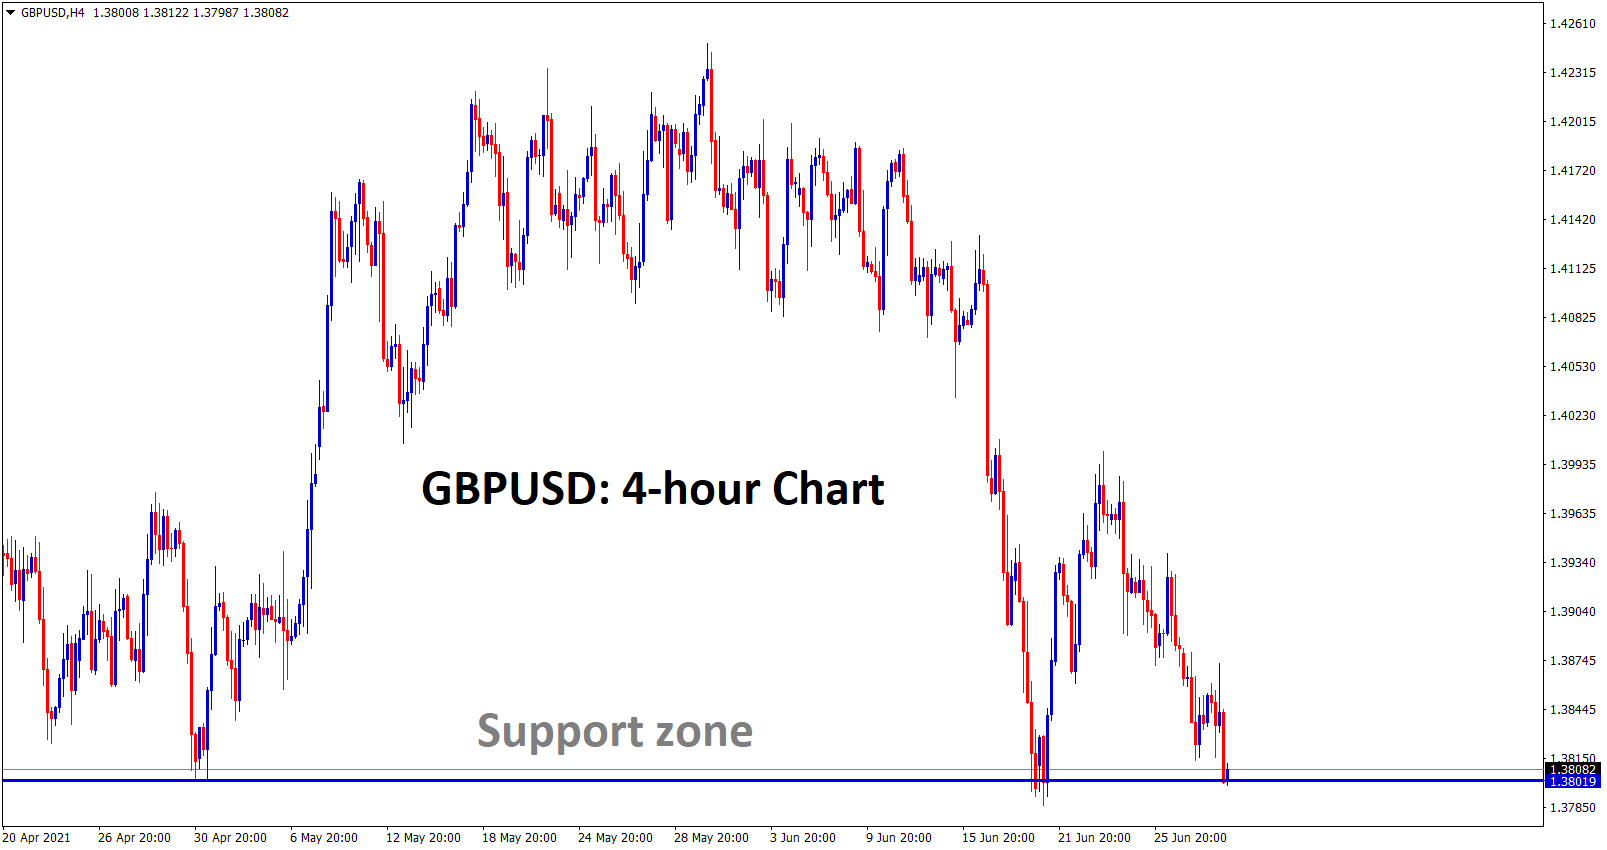 GBPUSD standing exactly at the support zone